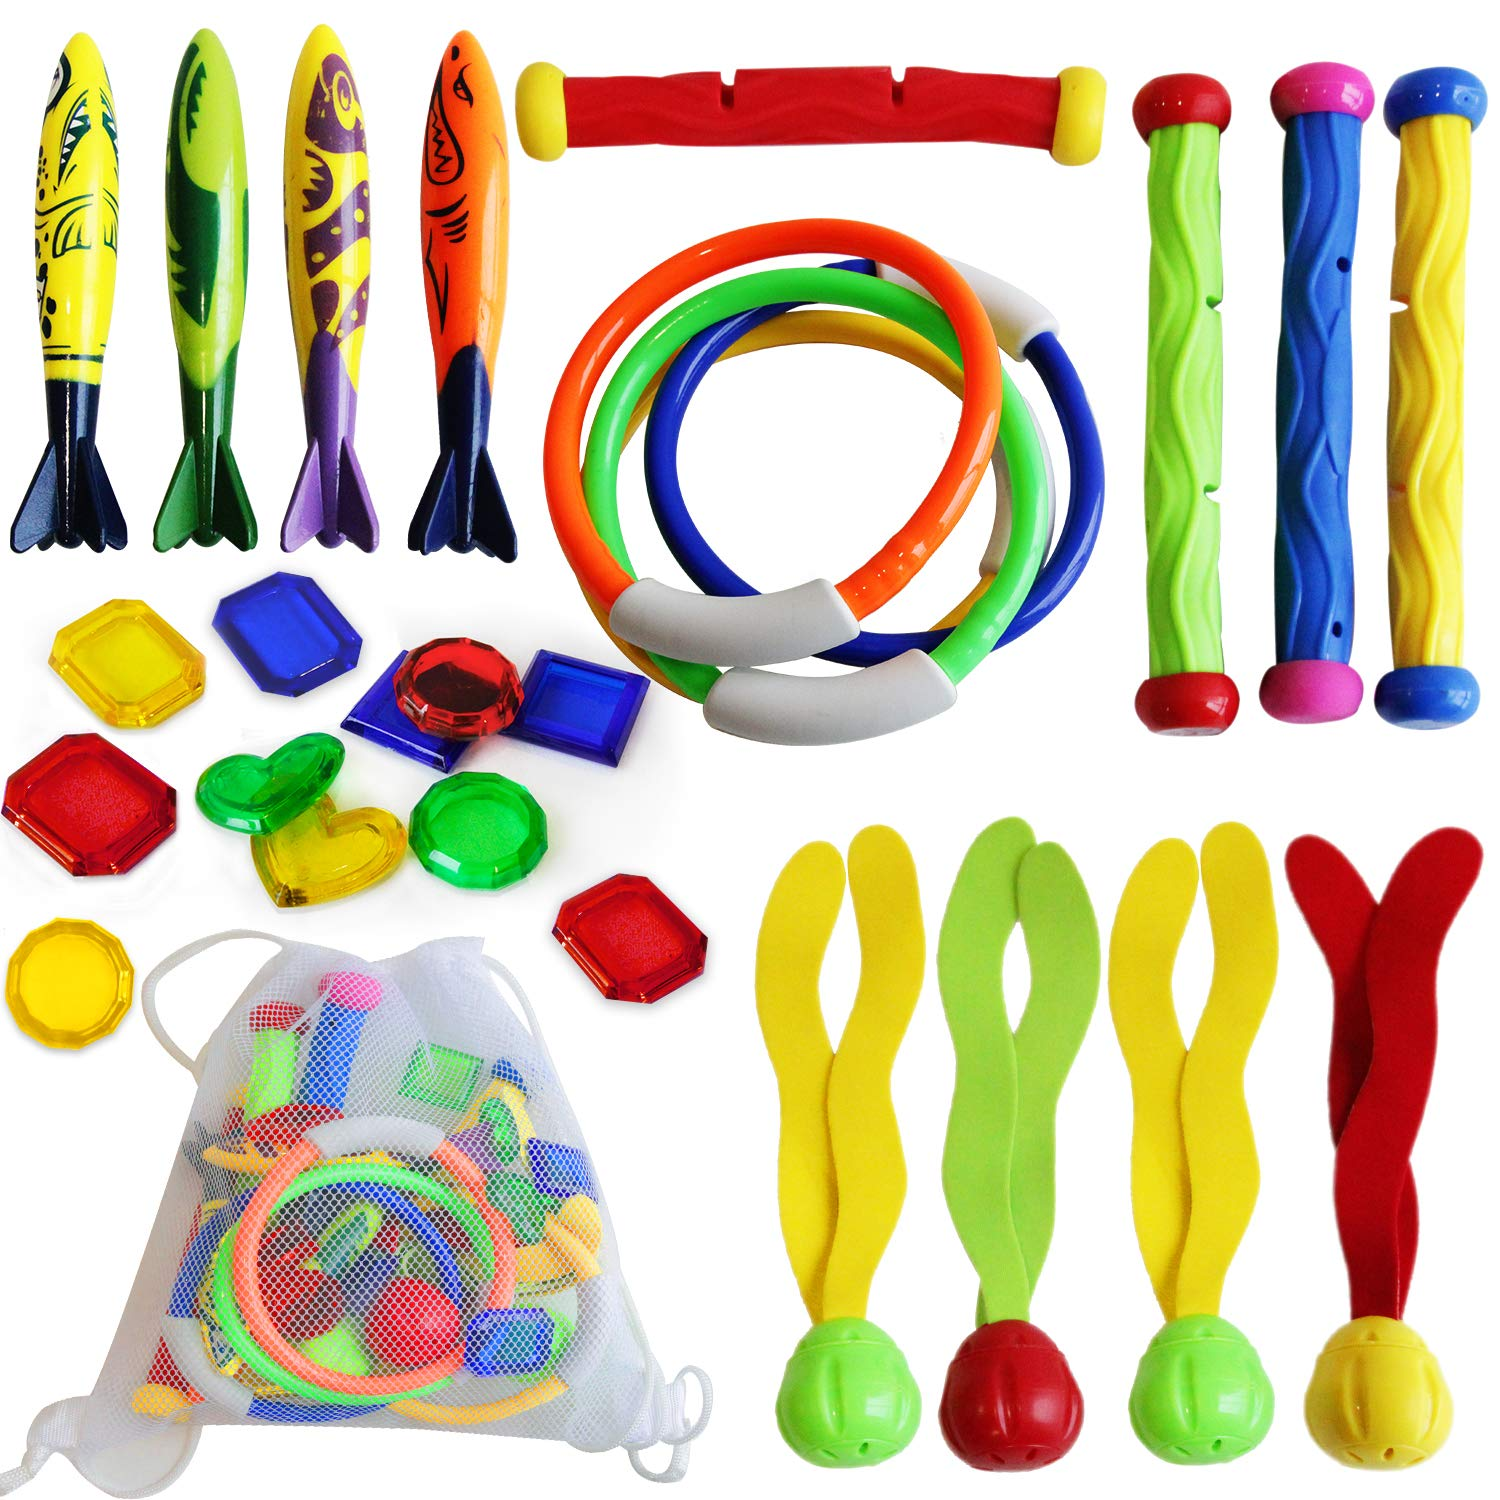 ToyerBee Diving Toys, 29 Pack Pool Toys with Organizer for Kids/Toddlers, Underwater Diving Rings(4 Pcs), Toypedo Bandits(4 Pcs), Diving Sticks(4 Pcs), Diving Toy Balls(4 Pcs) with Underwater Treasure